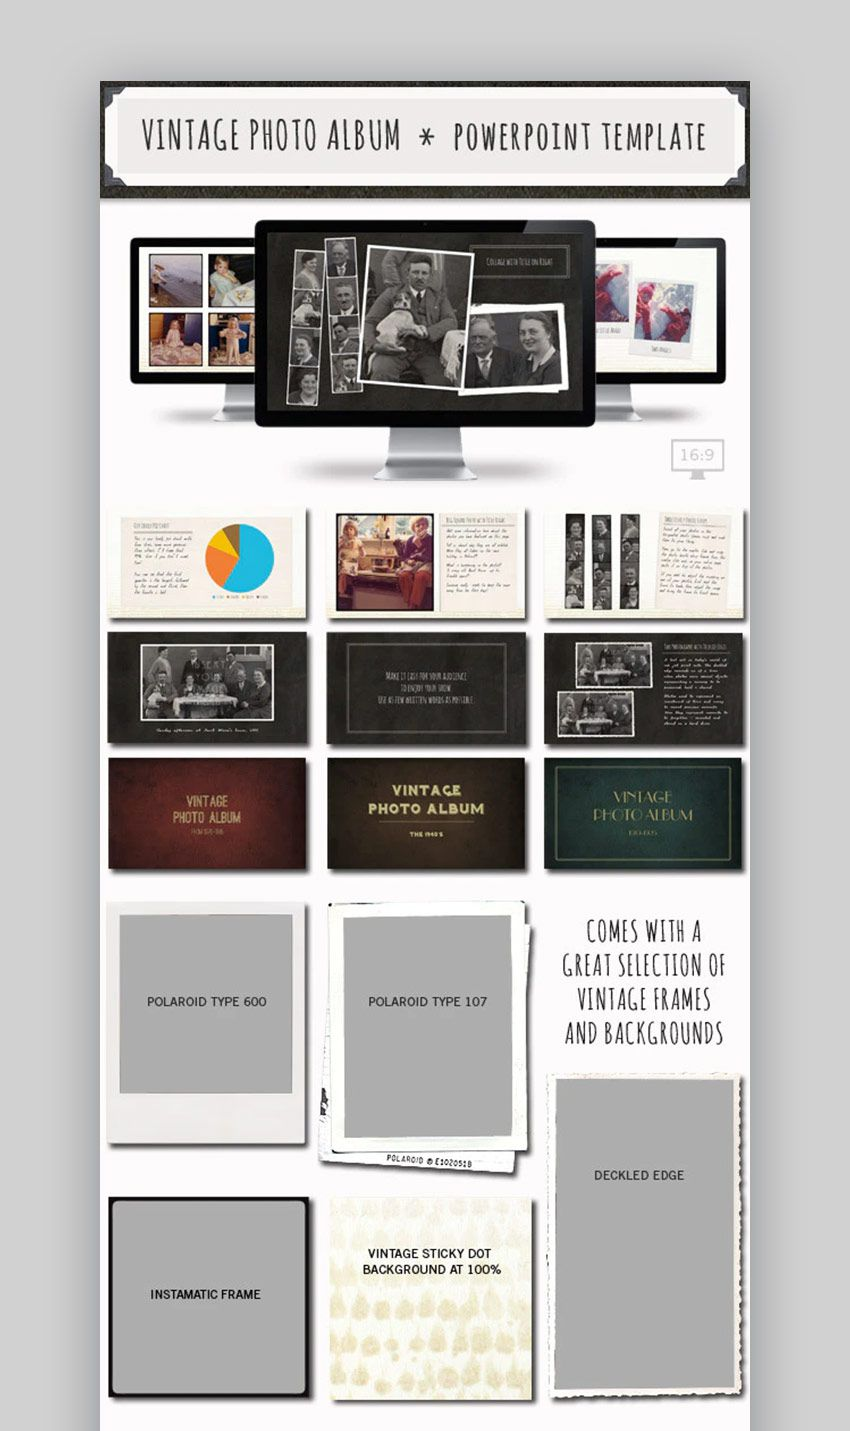 000 Astounding In Loving Memory Powerpoint Template Free Download Sample Full